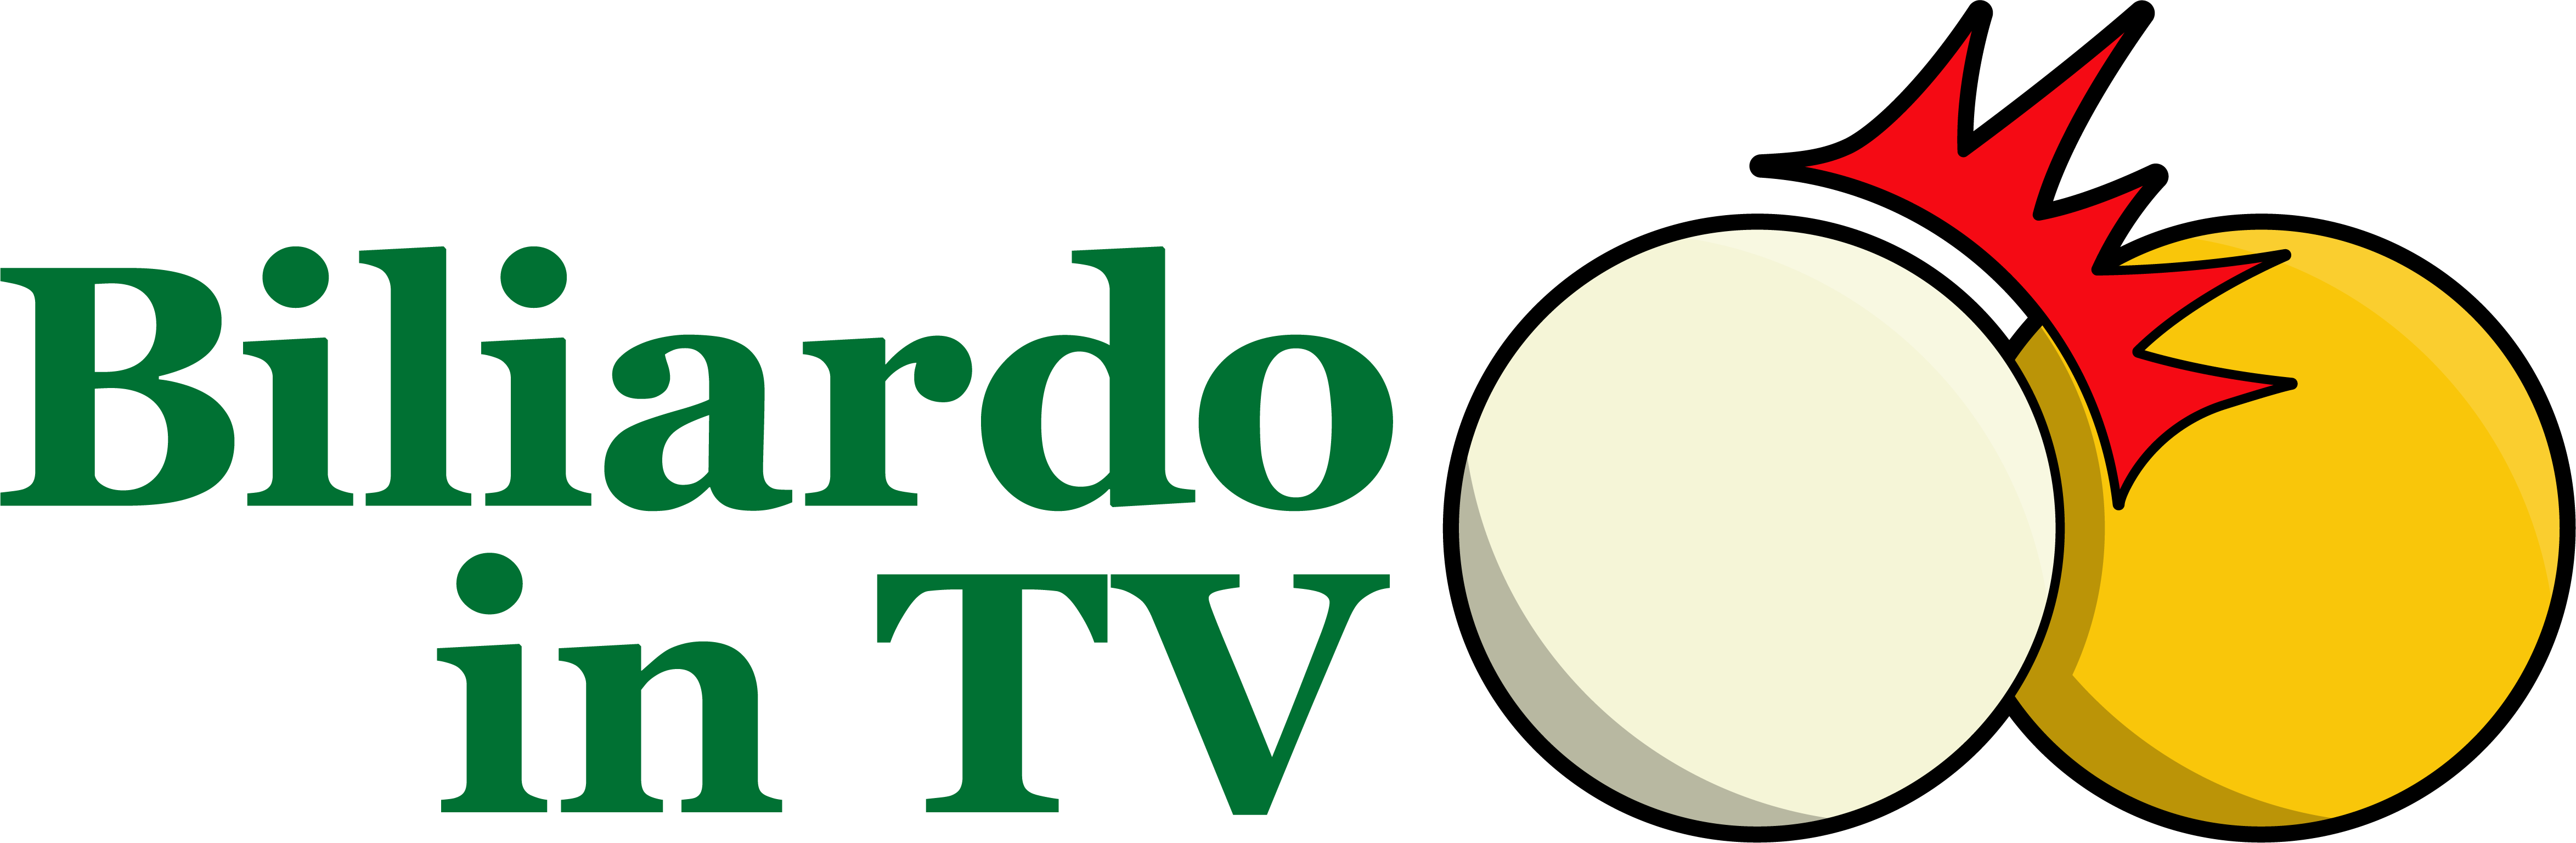 Biliardo in Tv